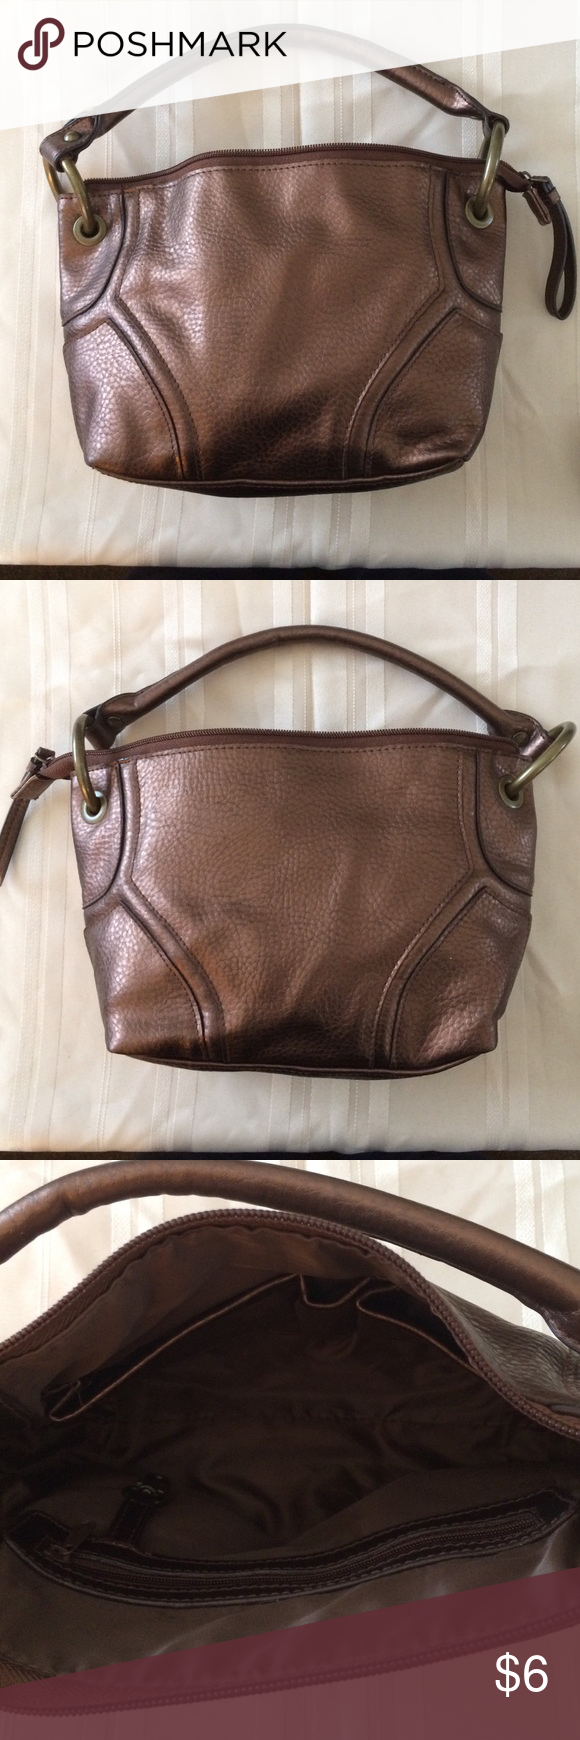 """SMALL CLUTCH BAG BRONZE COLOR Nice small bag bronze color with large polished gold ring and tab accents. Two pouches and a zippered pocket inside.  Size 11x7"""" depth 3"""". 100% PVC material. In very good condition. Willing to bundle items. Smoke and pet free house. Bags Clutches & Wristlets"""